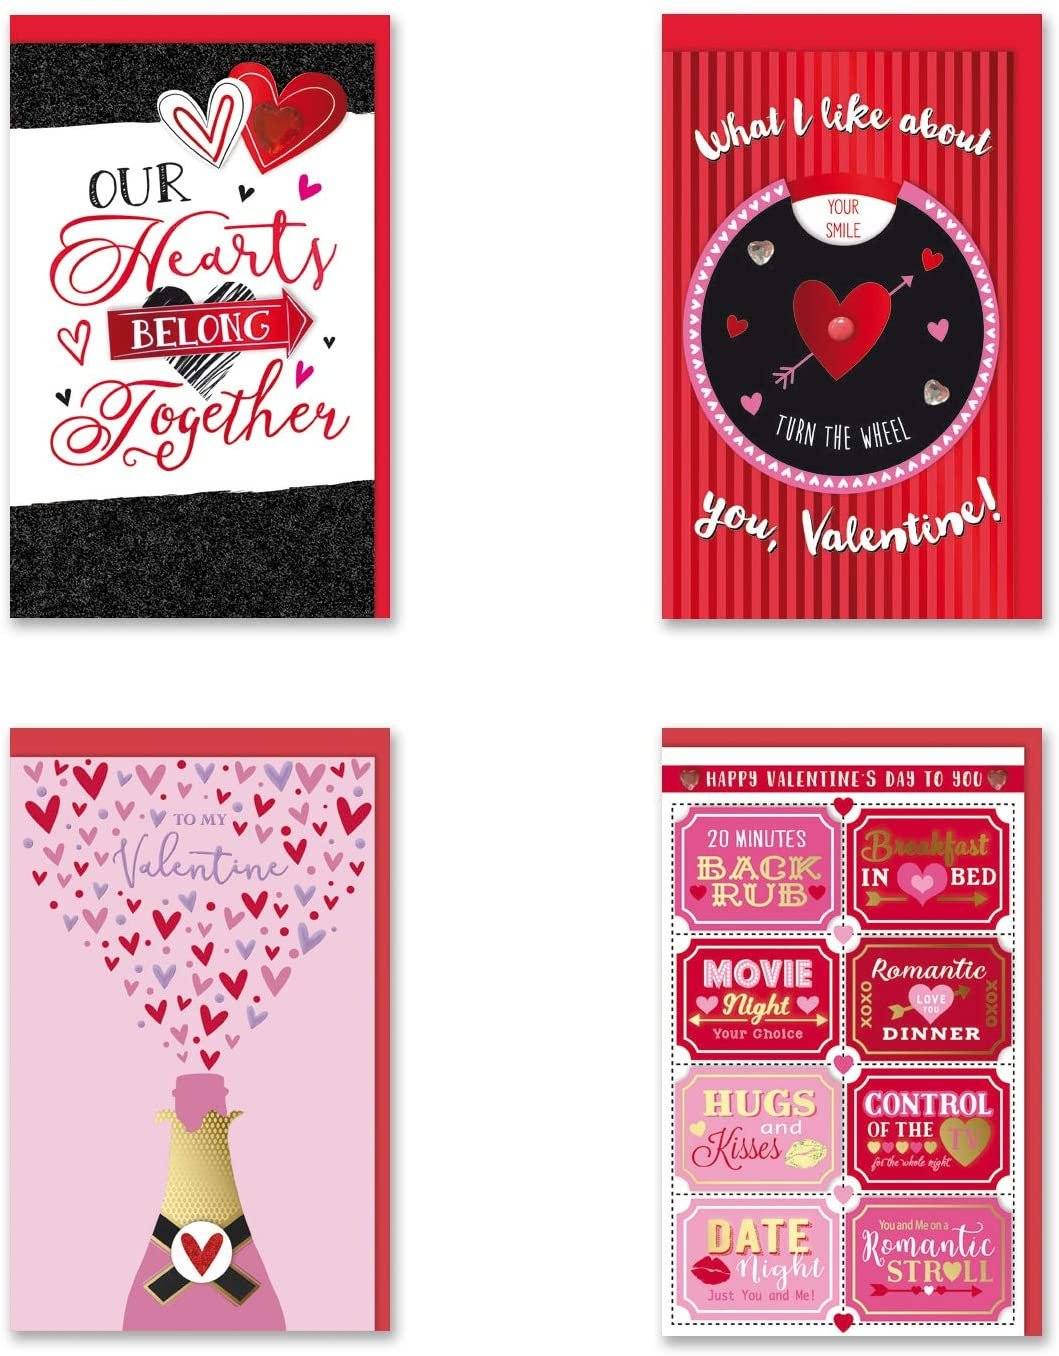 B-THERE Bundle of 4 Valentine's Day Handmade Cards – Large. Envelopes Included